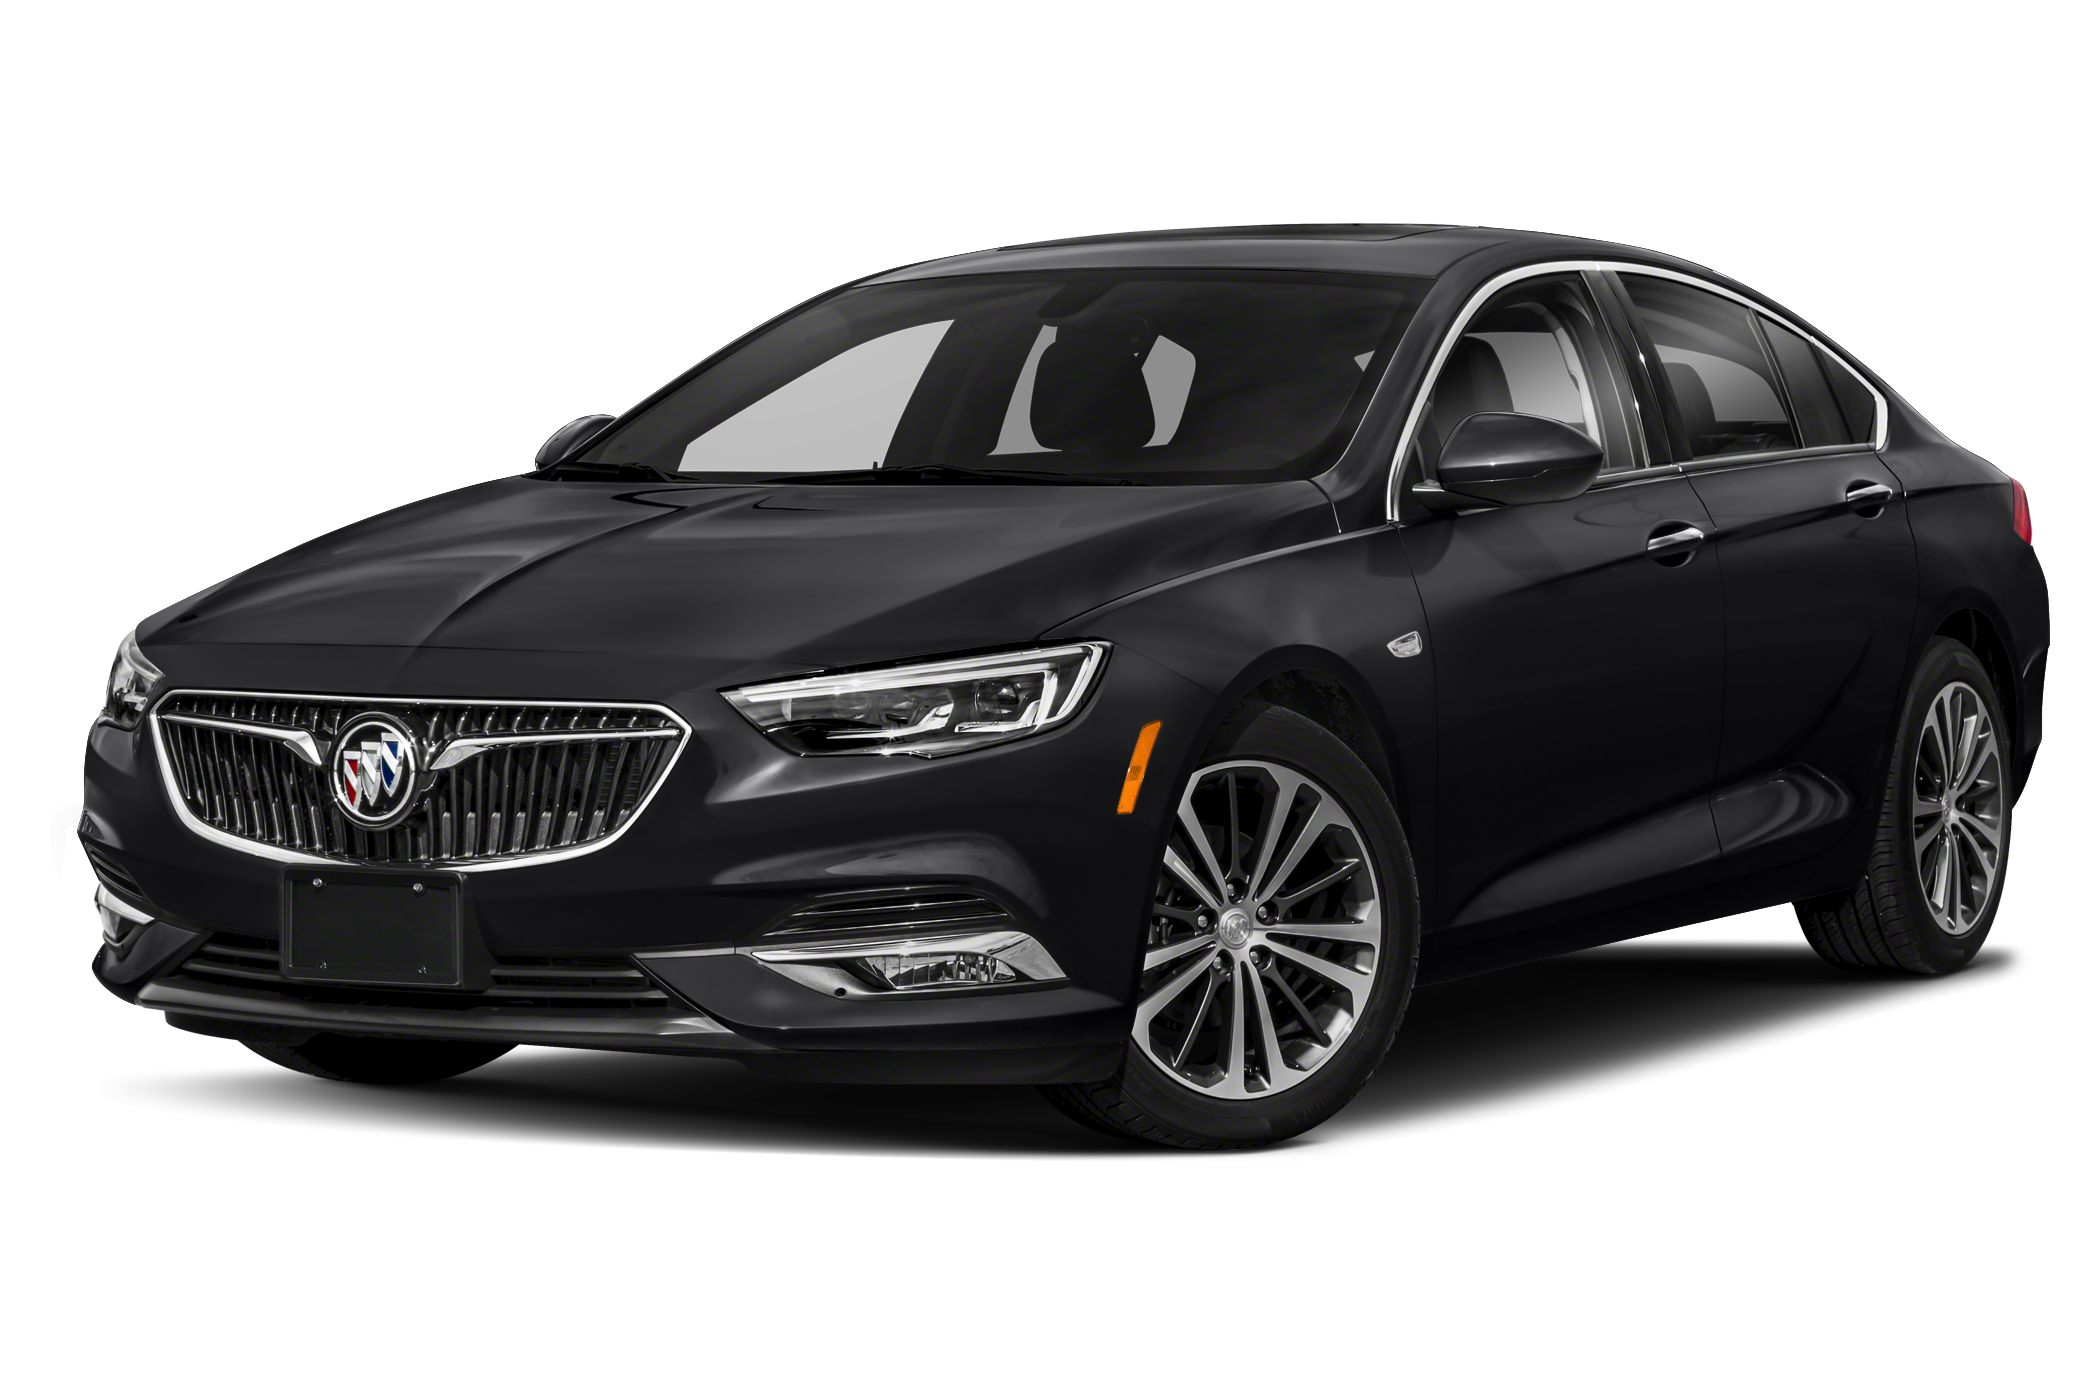 2020 Buick Regal Deals, Prices, Incentives & Leases 2021 Buick Regal Lease Deals, Exterior Colors, Horsepower